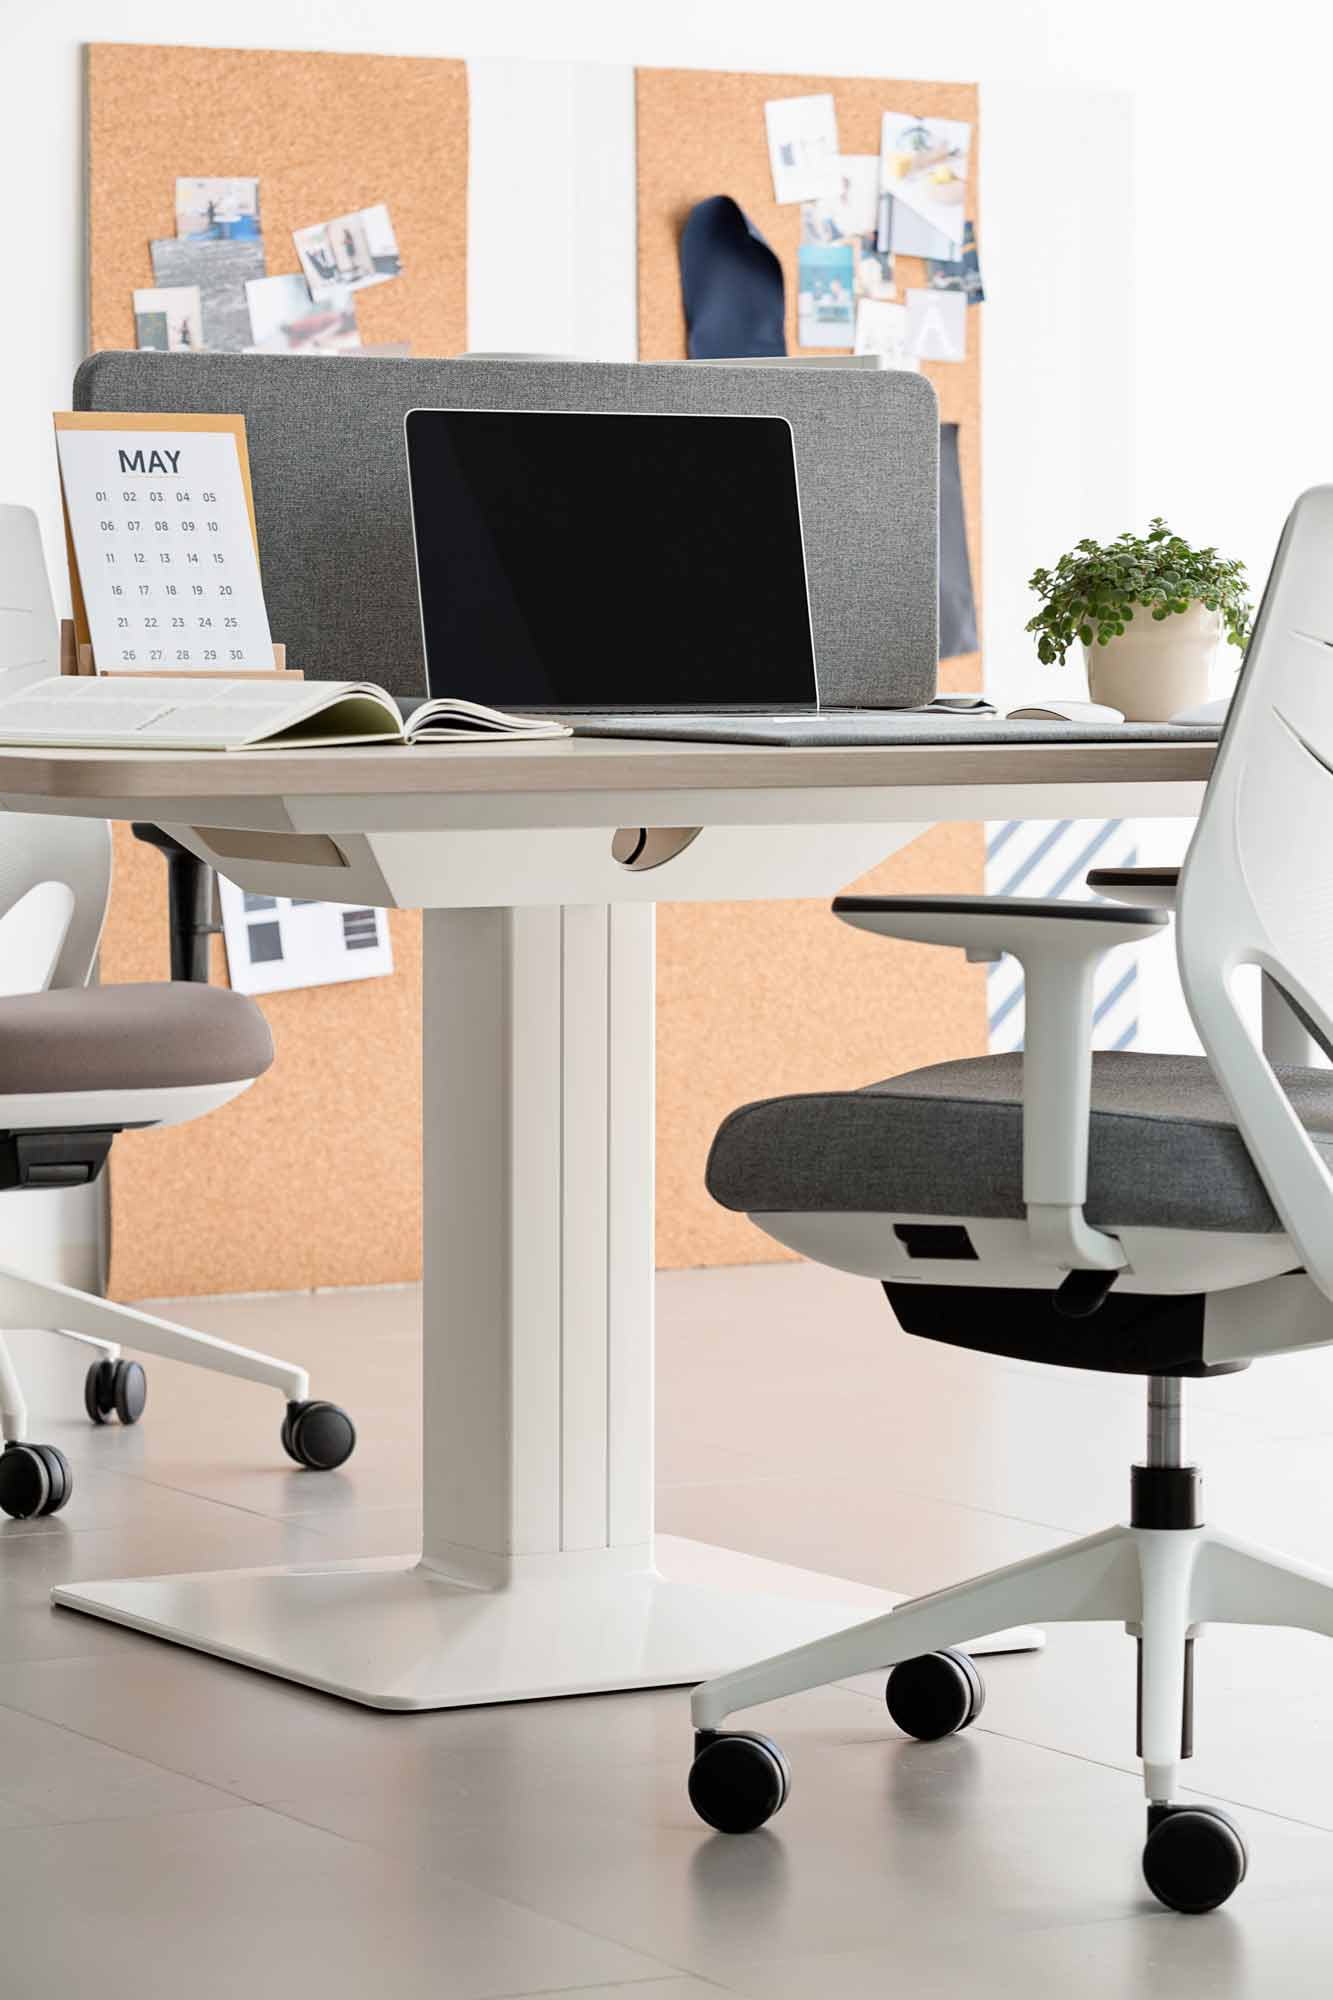 desk power operative executive tables efit chair white grey mobility cabinets design height colorful adjustable personal computer laptop workplace sharing masof actiu